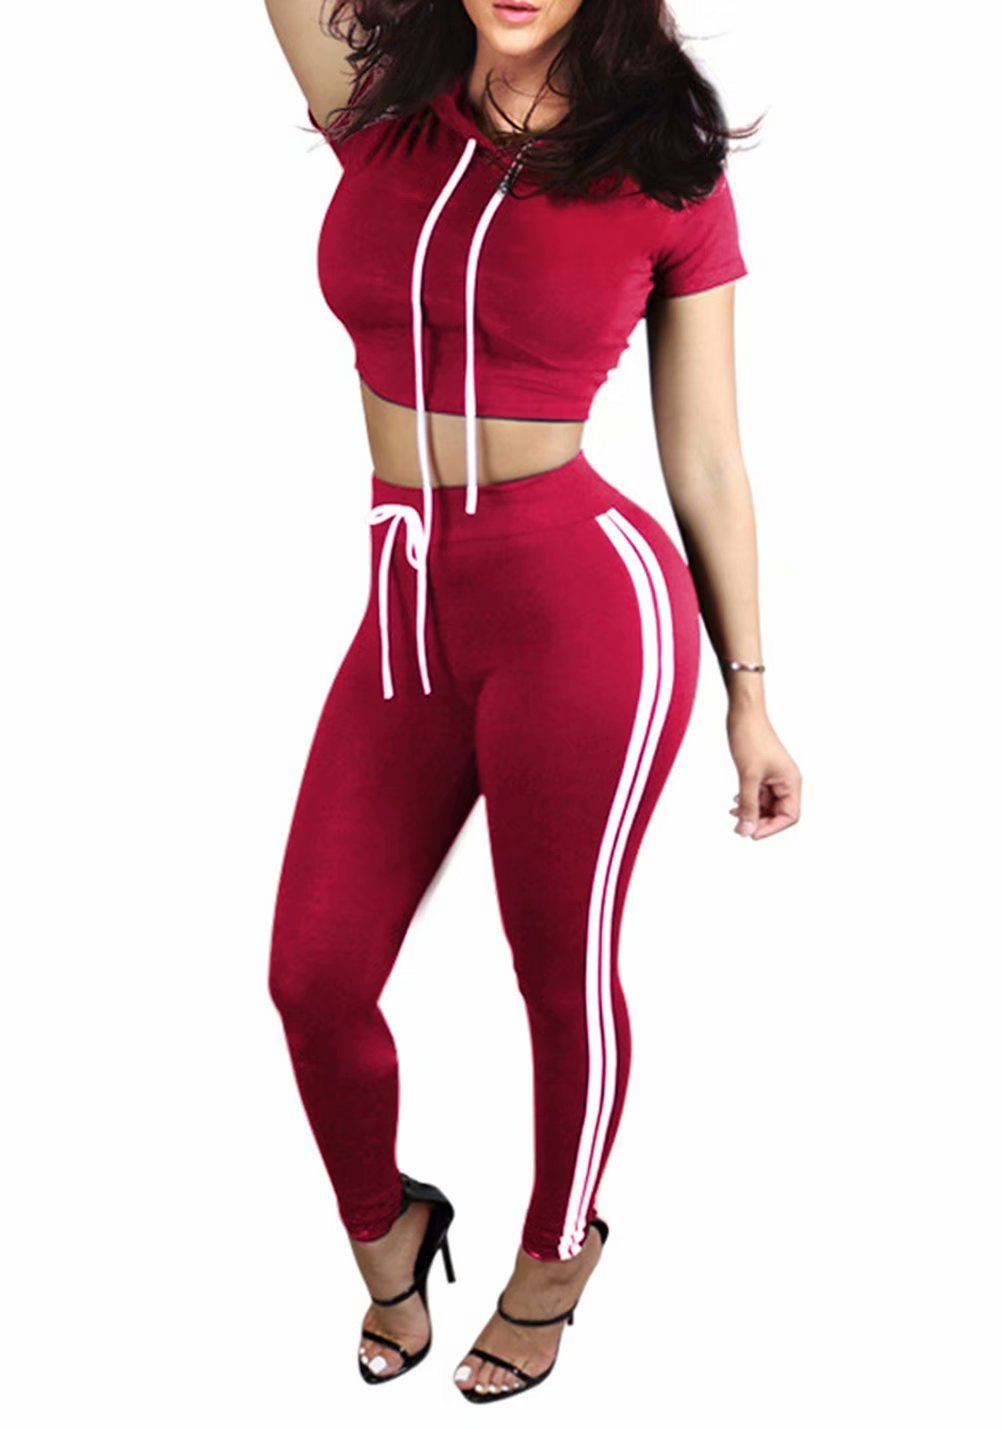 2 Piece Outfits for Women Hooded Tracksuit Crop Tops and Pants Jog Set Red XL